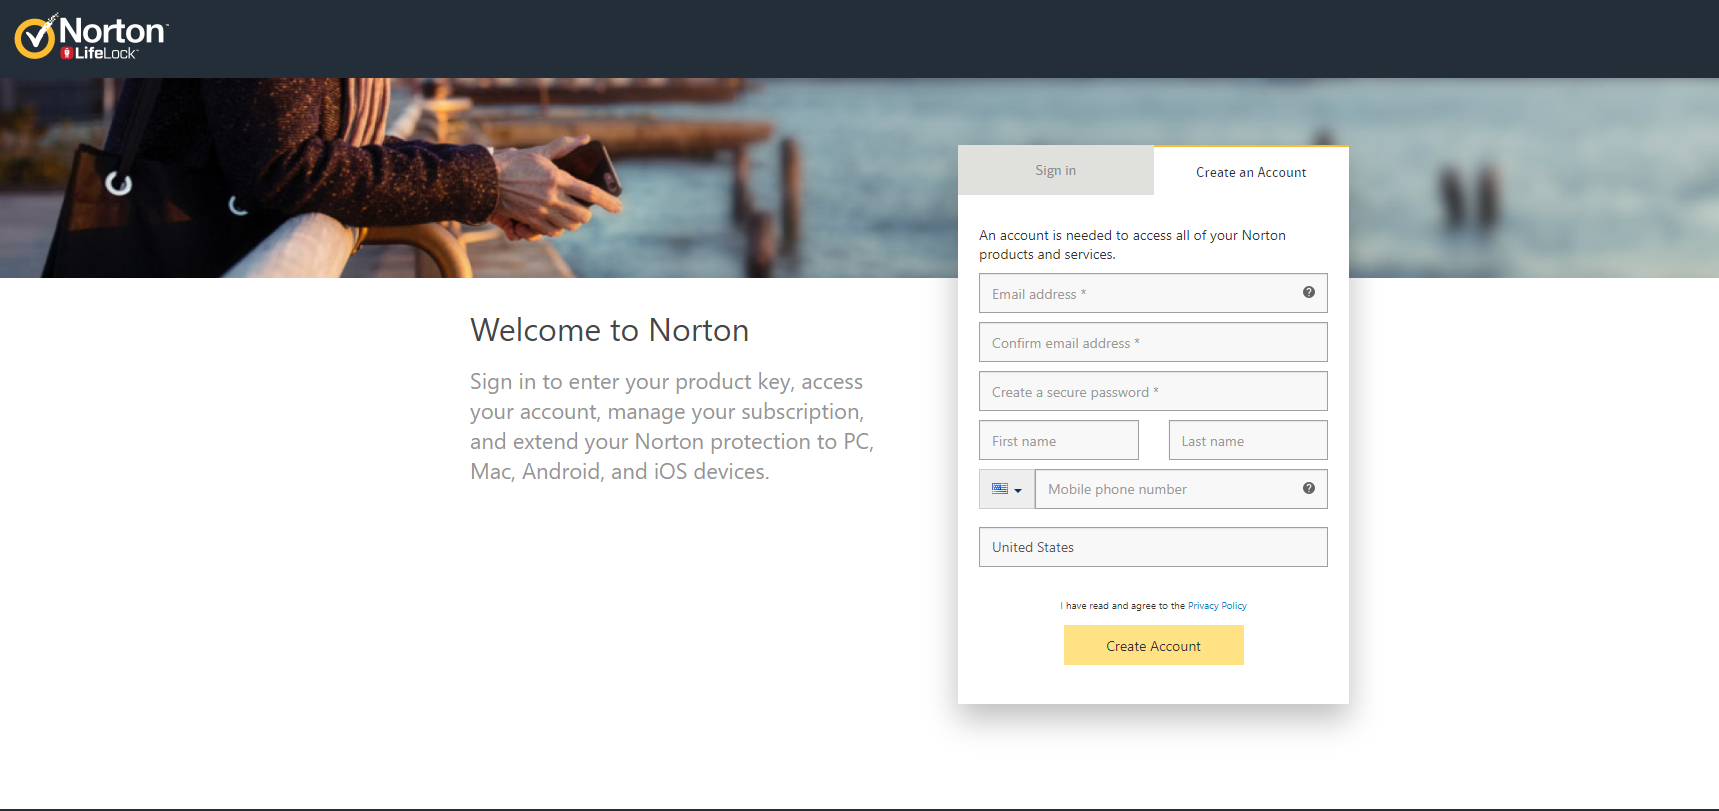 Sign up for Norton account